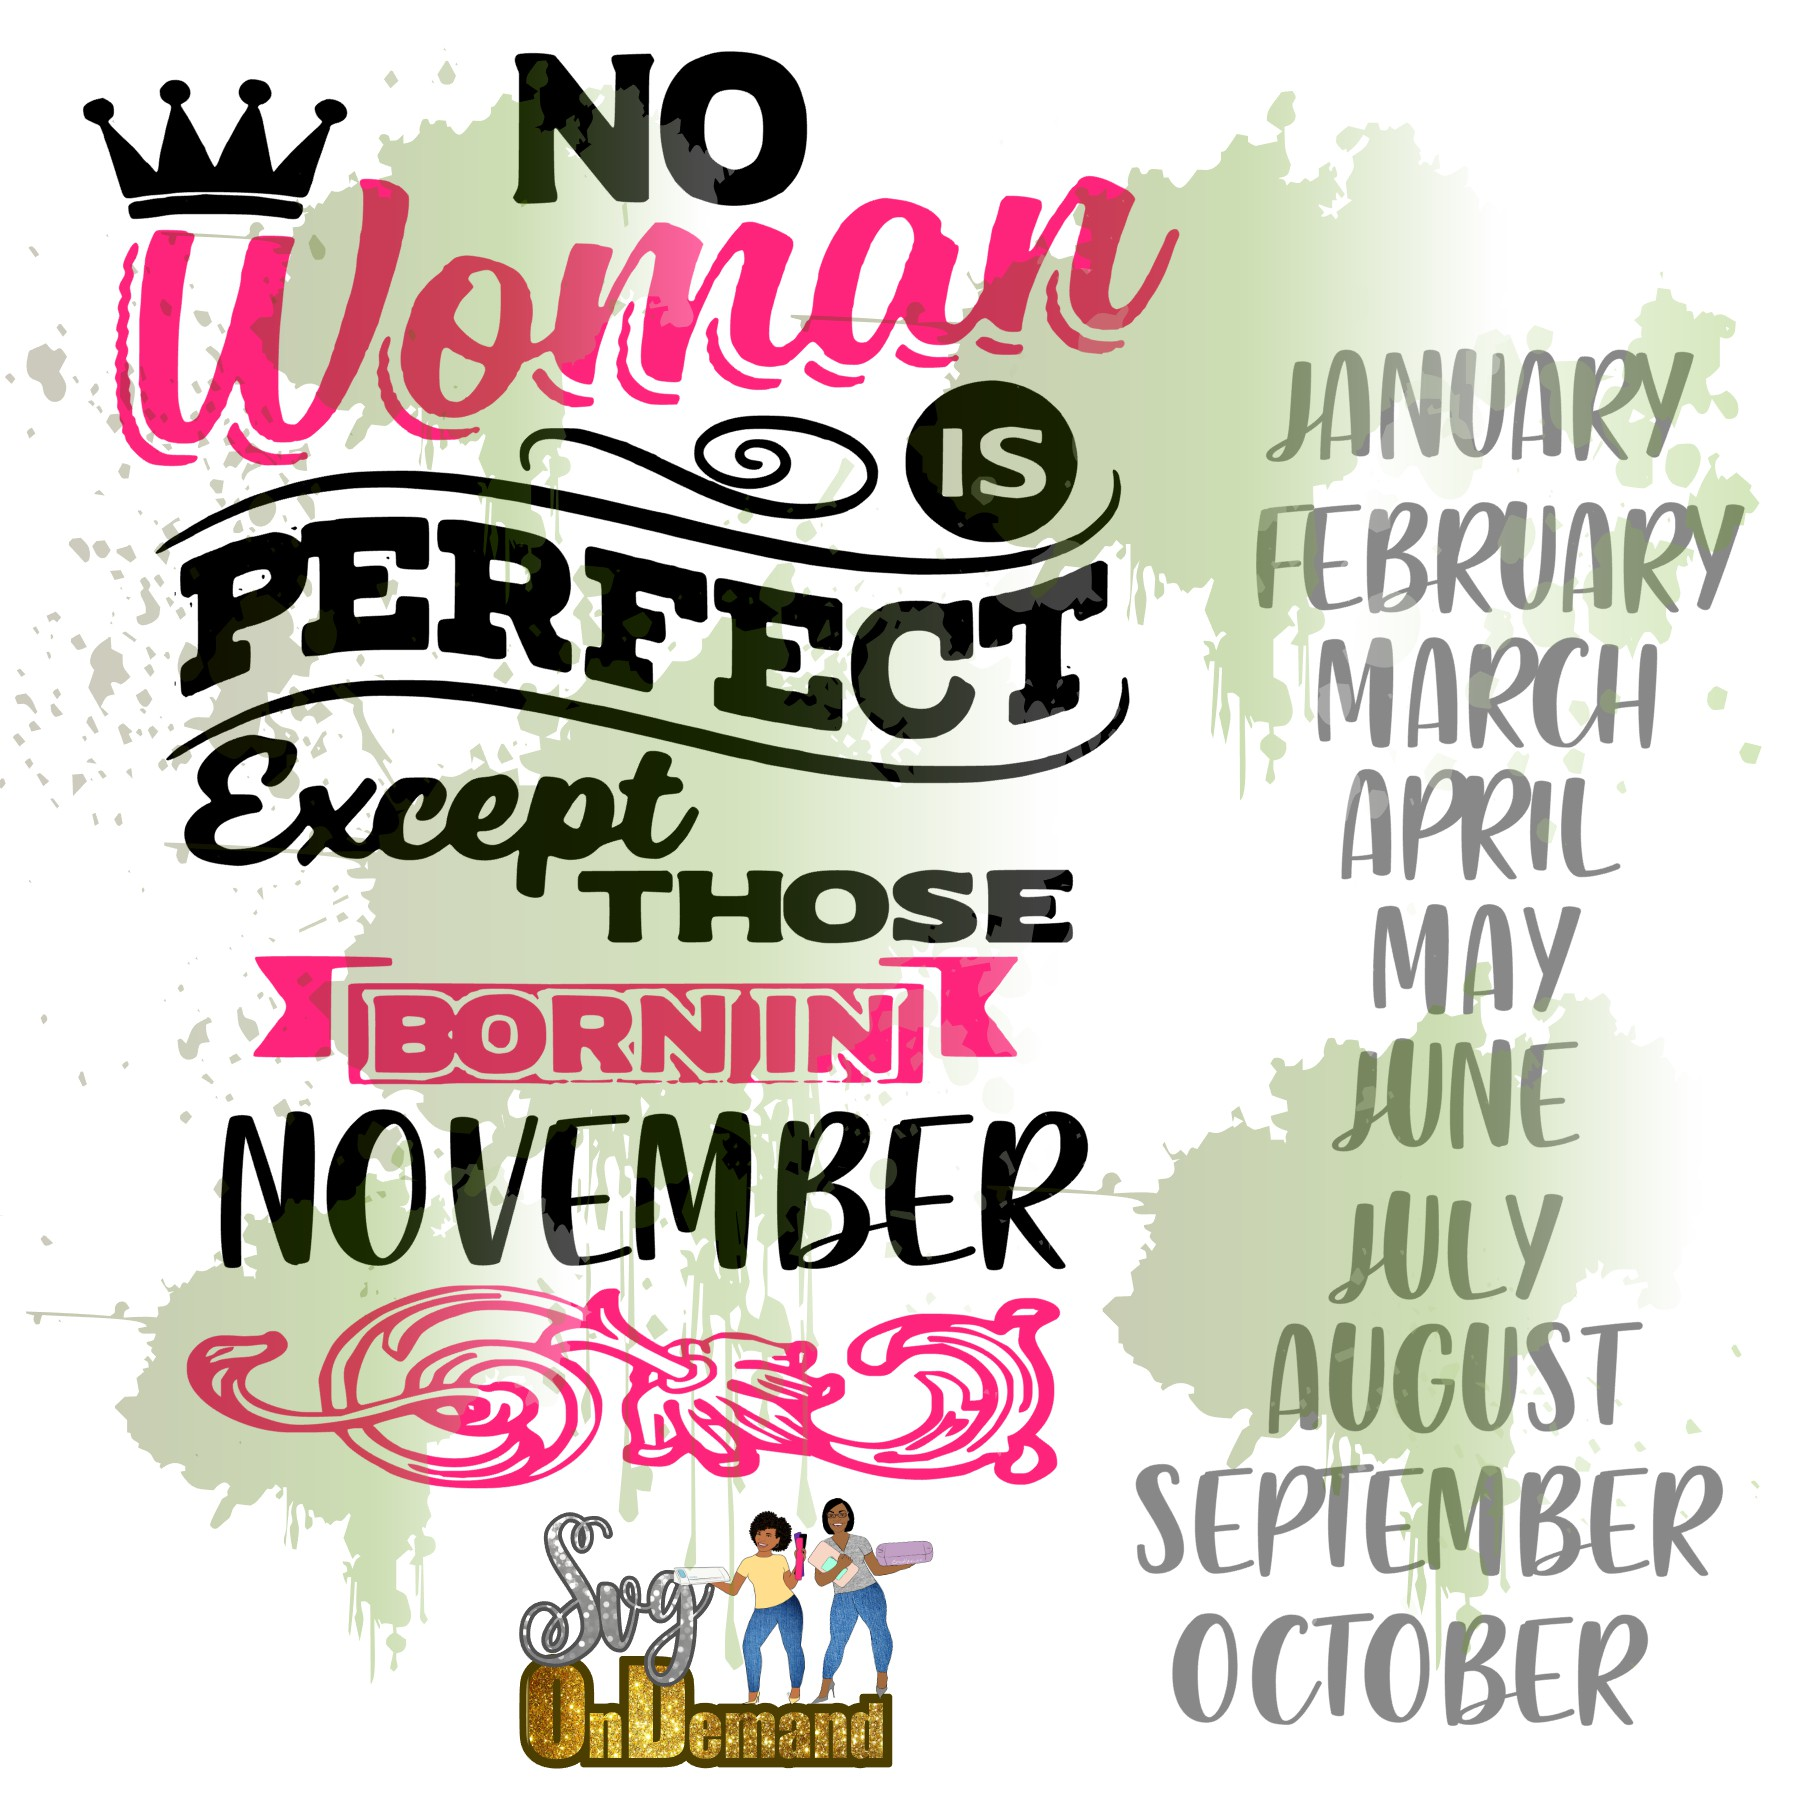 No Woman Is Perfect Except Those Who Are Born In